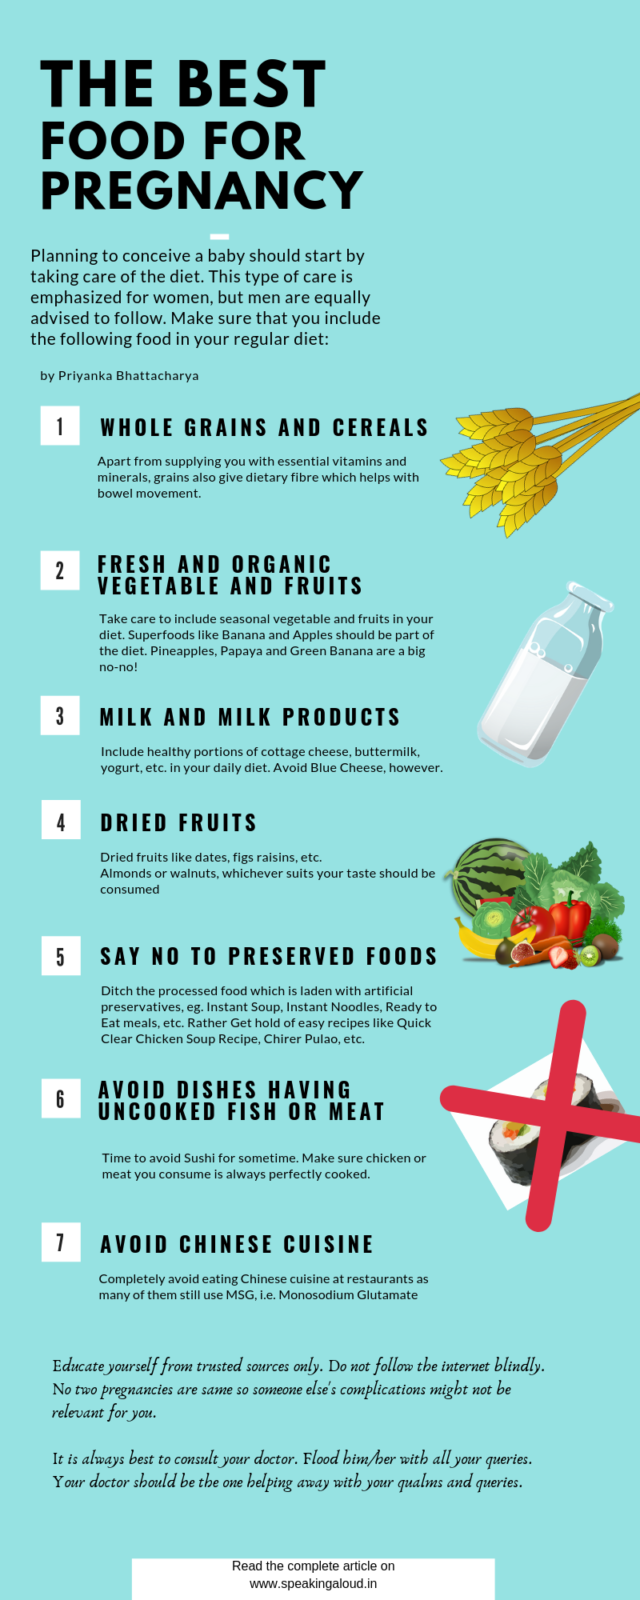 The Best Food for Pregnancy